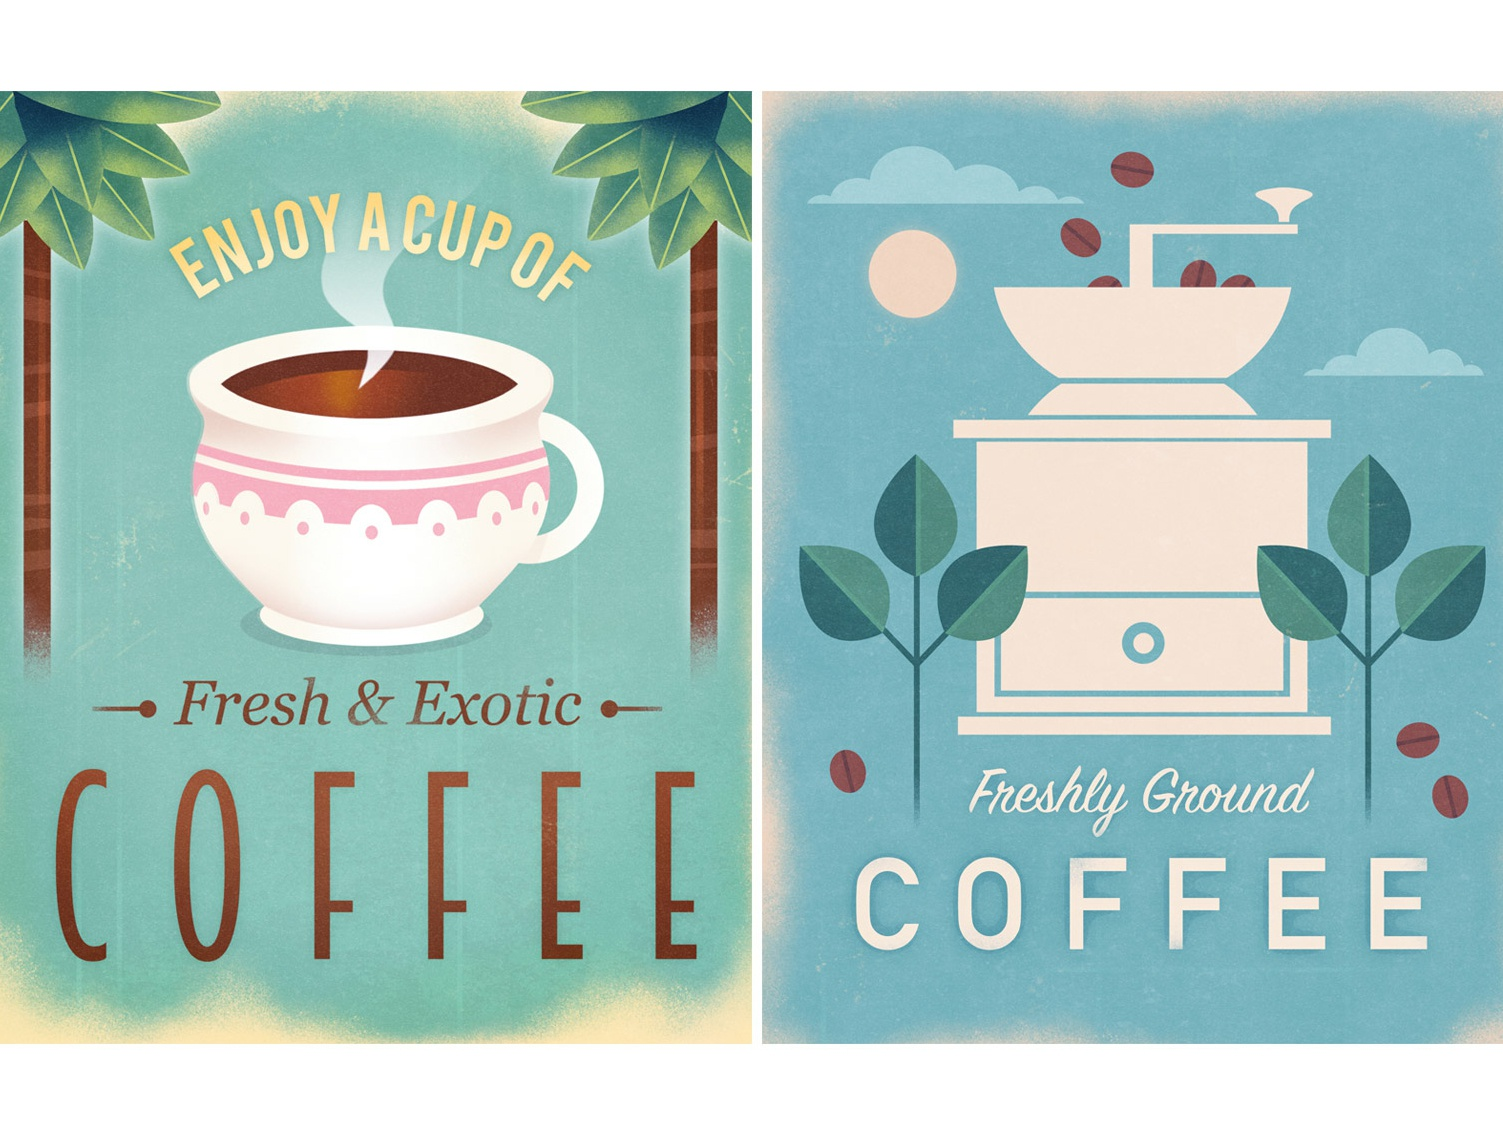 Vintage Coffee Poster Designs cup of coffee beverage coffee retro vintage retro poster poster graphic poster design graphic art design illustration